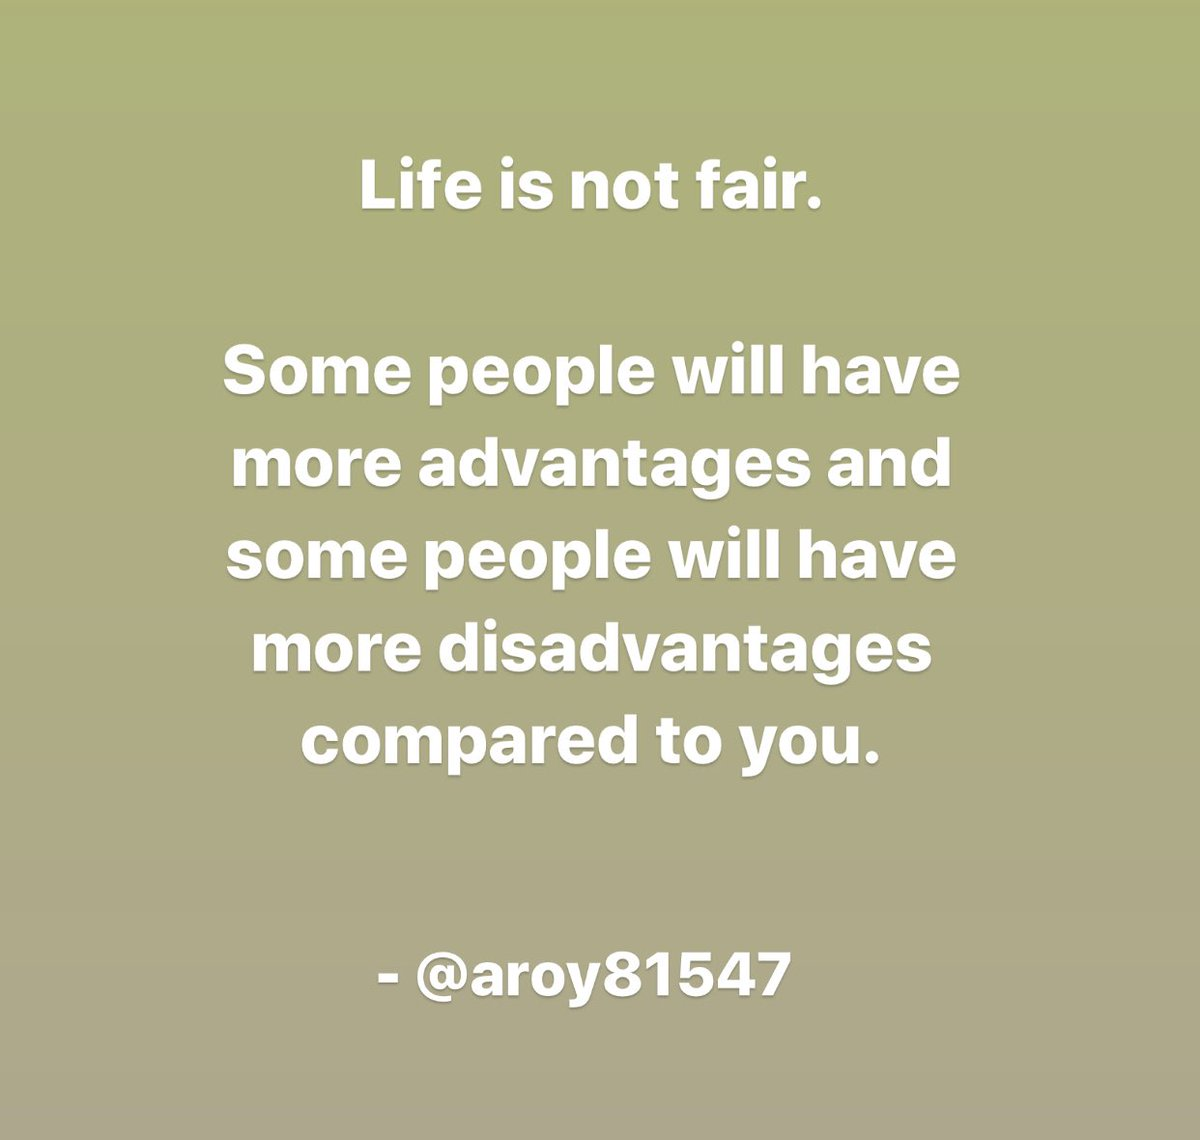 Have to make the best of the cards you're dealt with and if you're in a position of power, you should be looking to create a more equitable society . . . #life #not #fair #advantage #disadvantage #compare #comparison #reality #continue #despite  #sit #complain #act #try #create